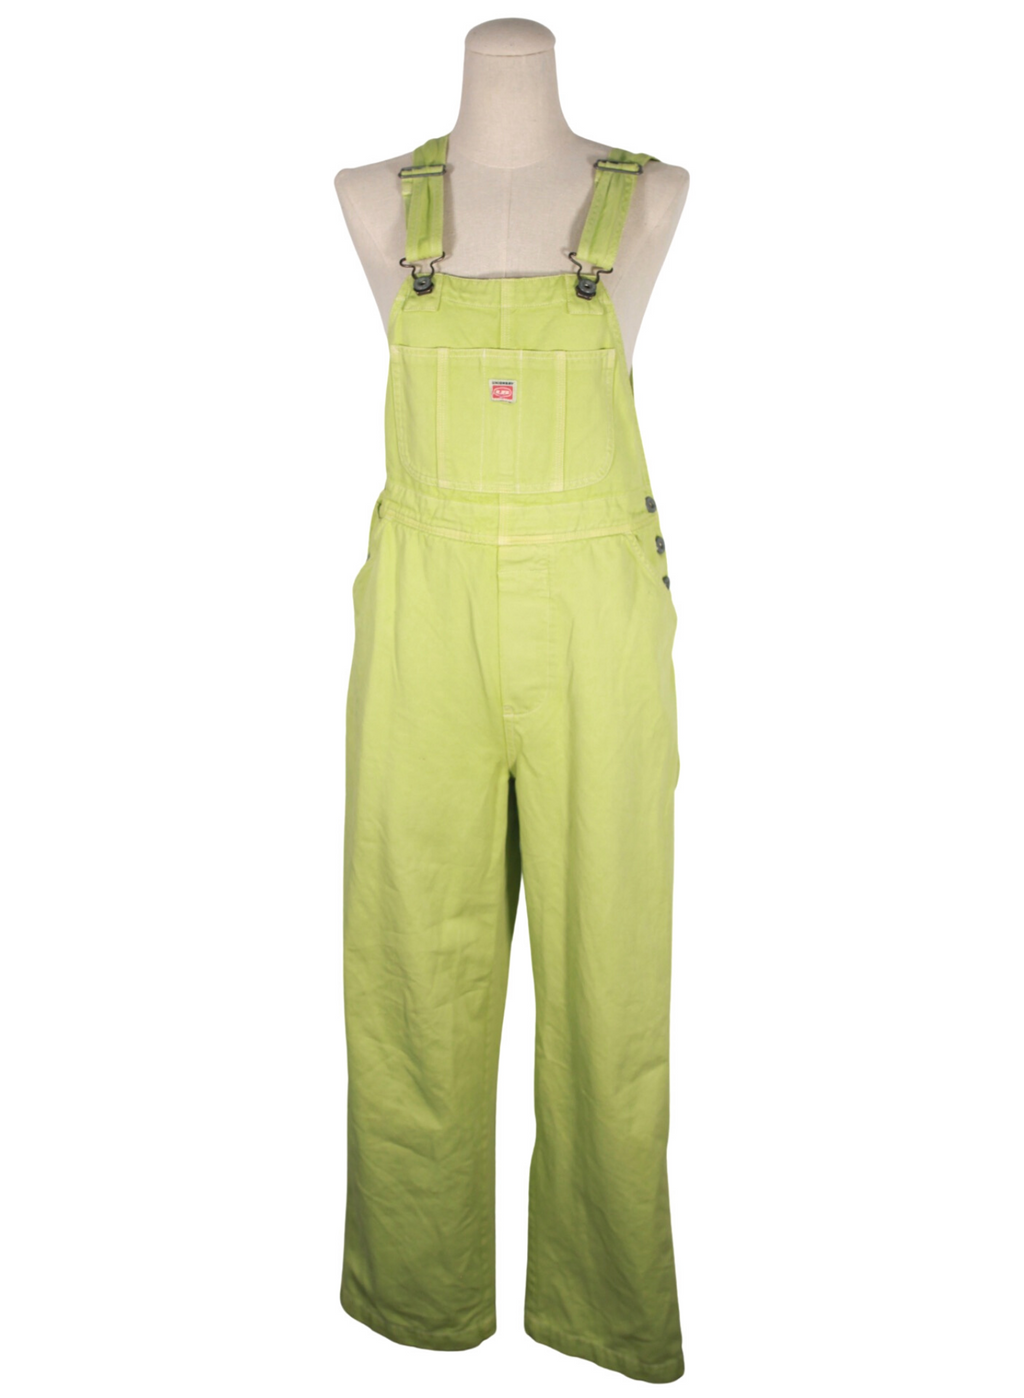 Vintage Green Overalls